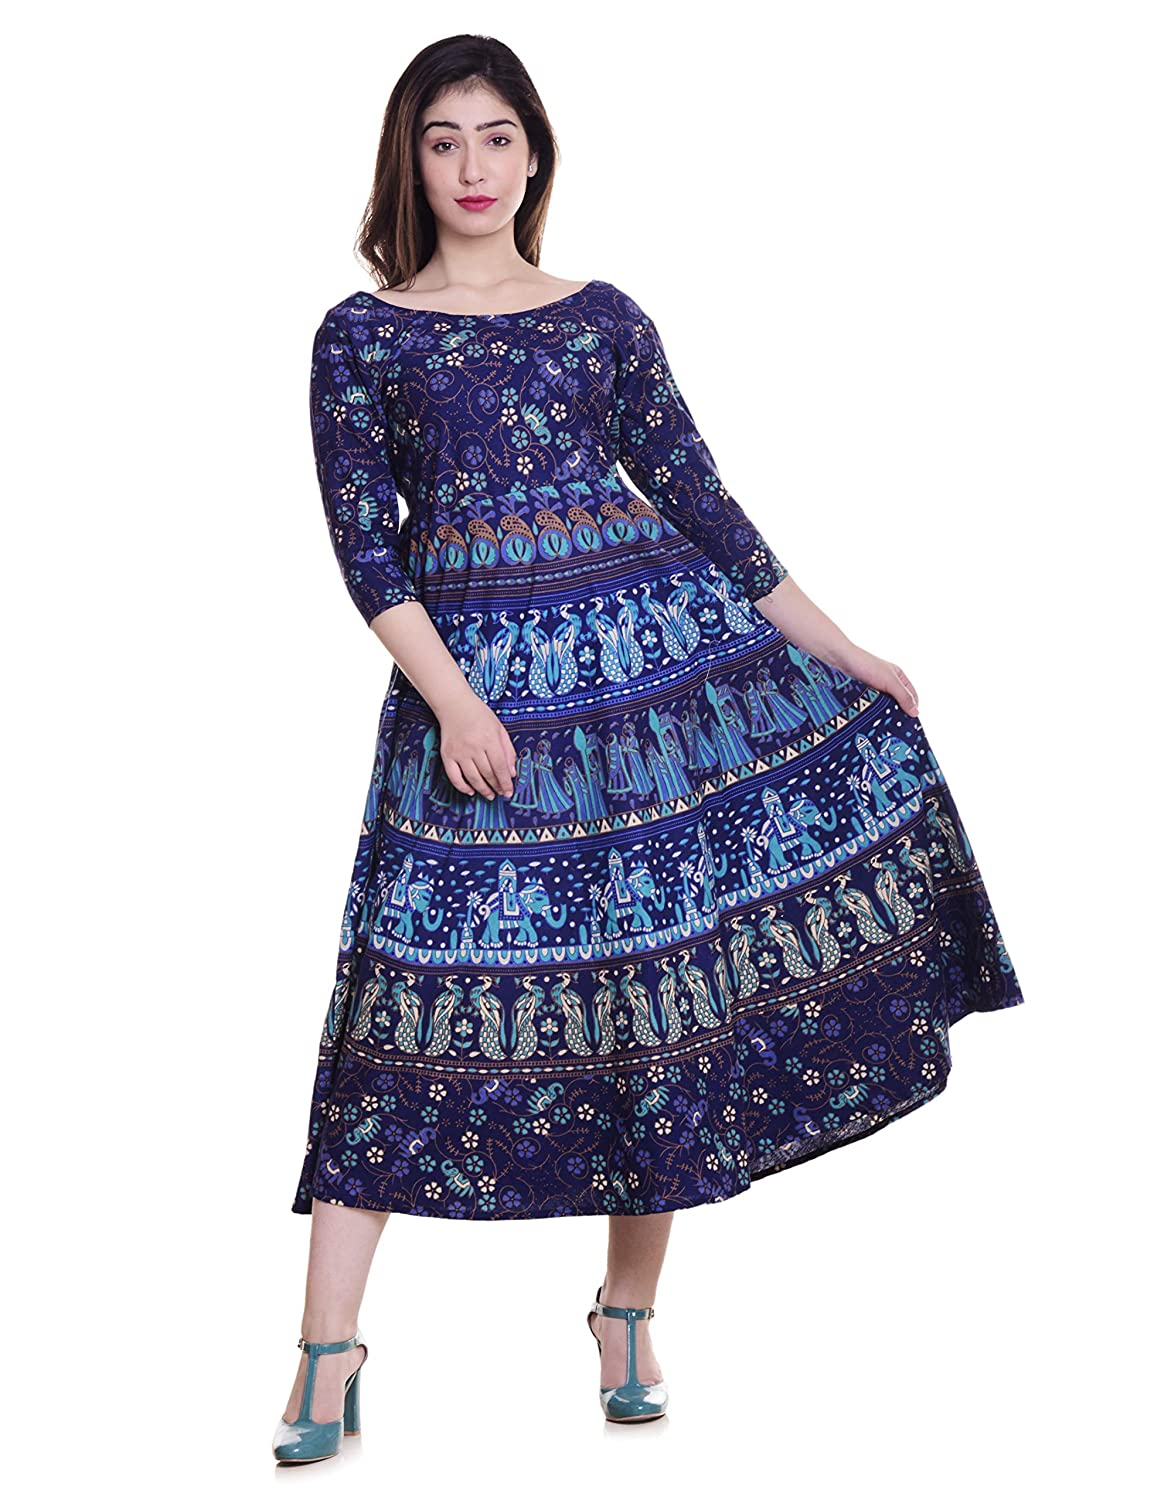 cd83aea8b7b Jaipuri Fashionista Cotton Women s Maxi Long Dress Jaipuri Printed with  Atteched Sleeves (Free Size Upto 44-XXL) Blue  Amazon.in  Clothing    Accessories